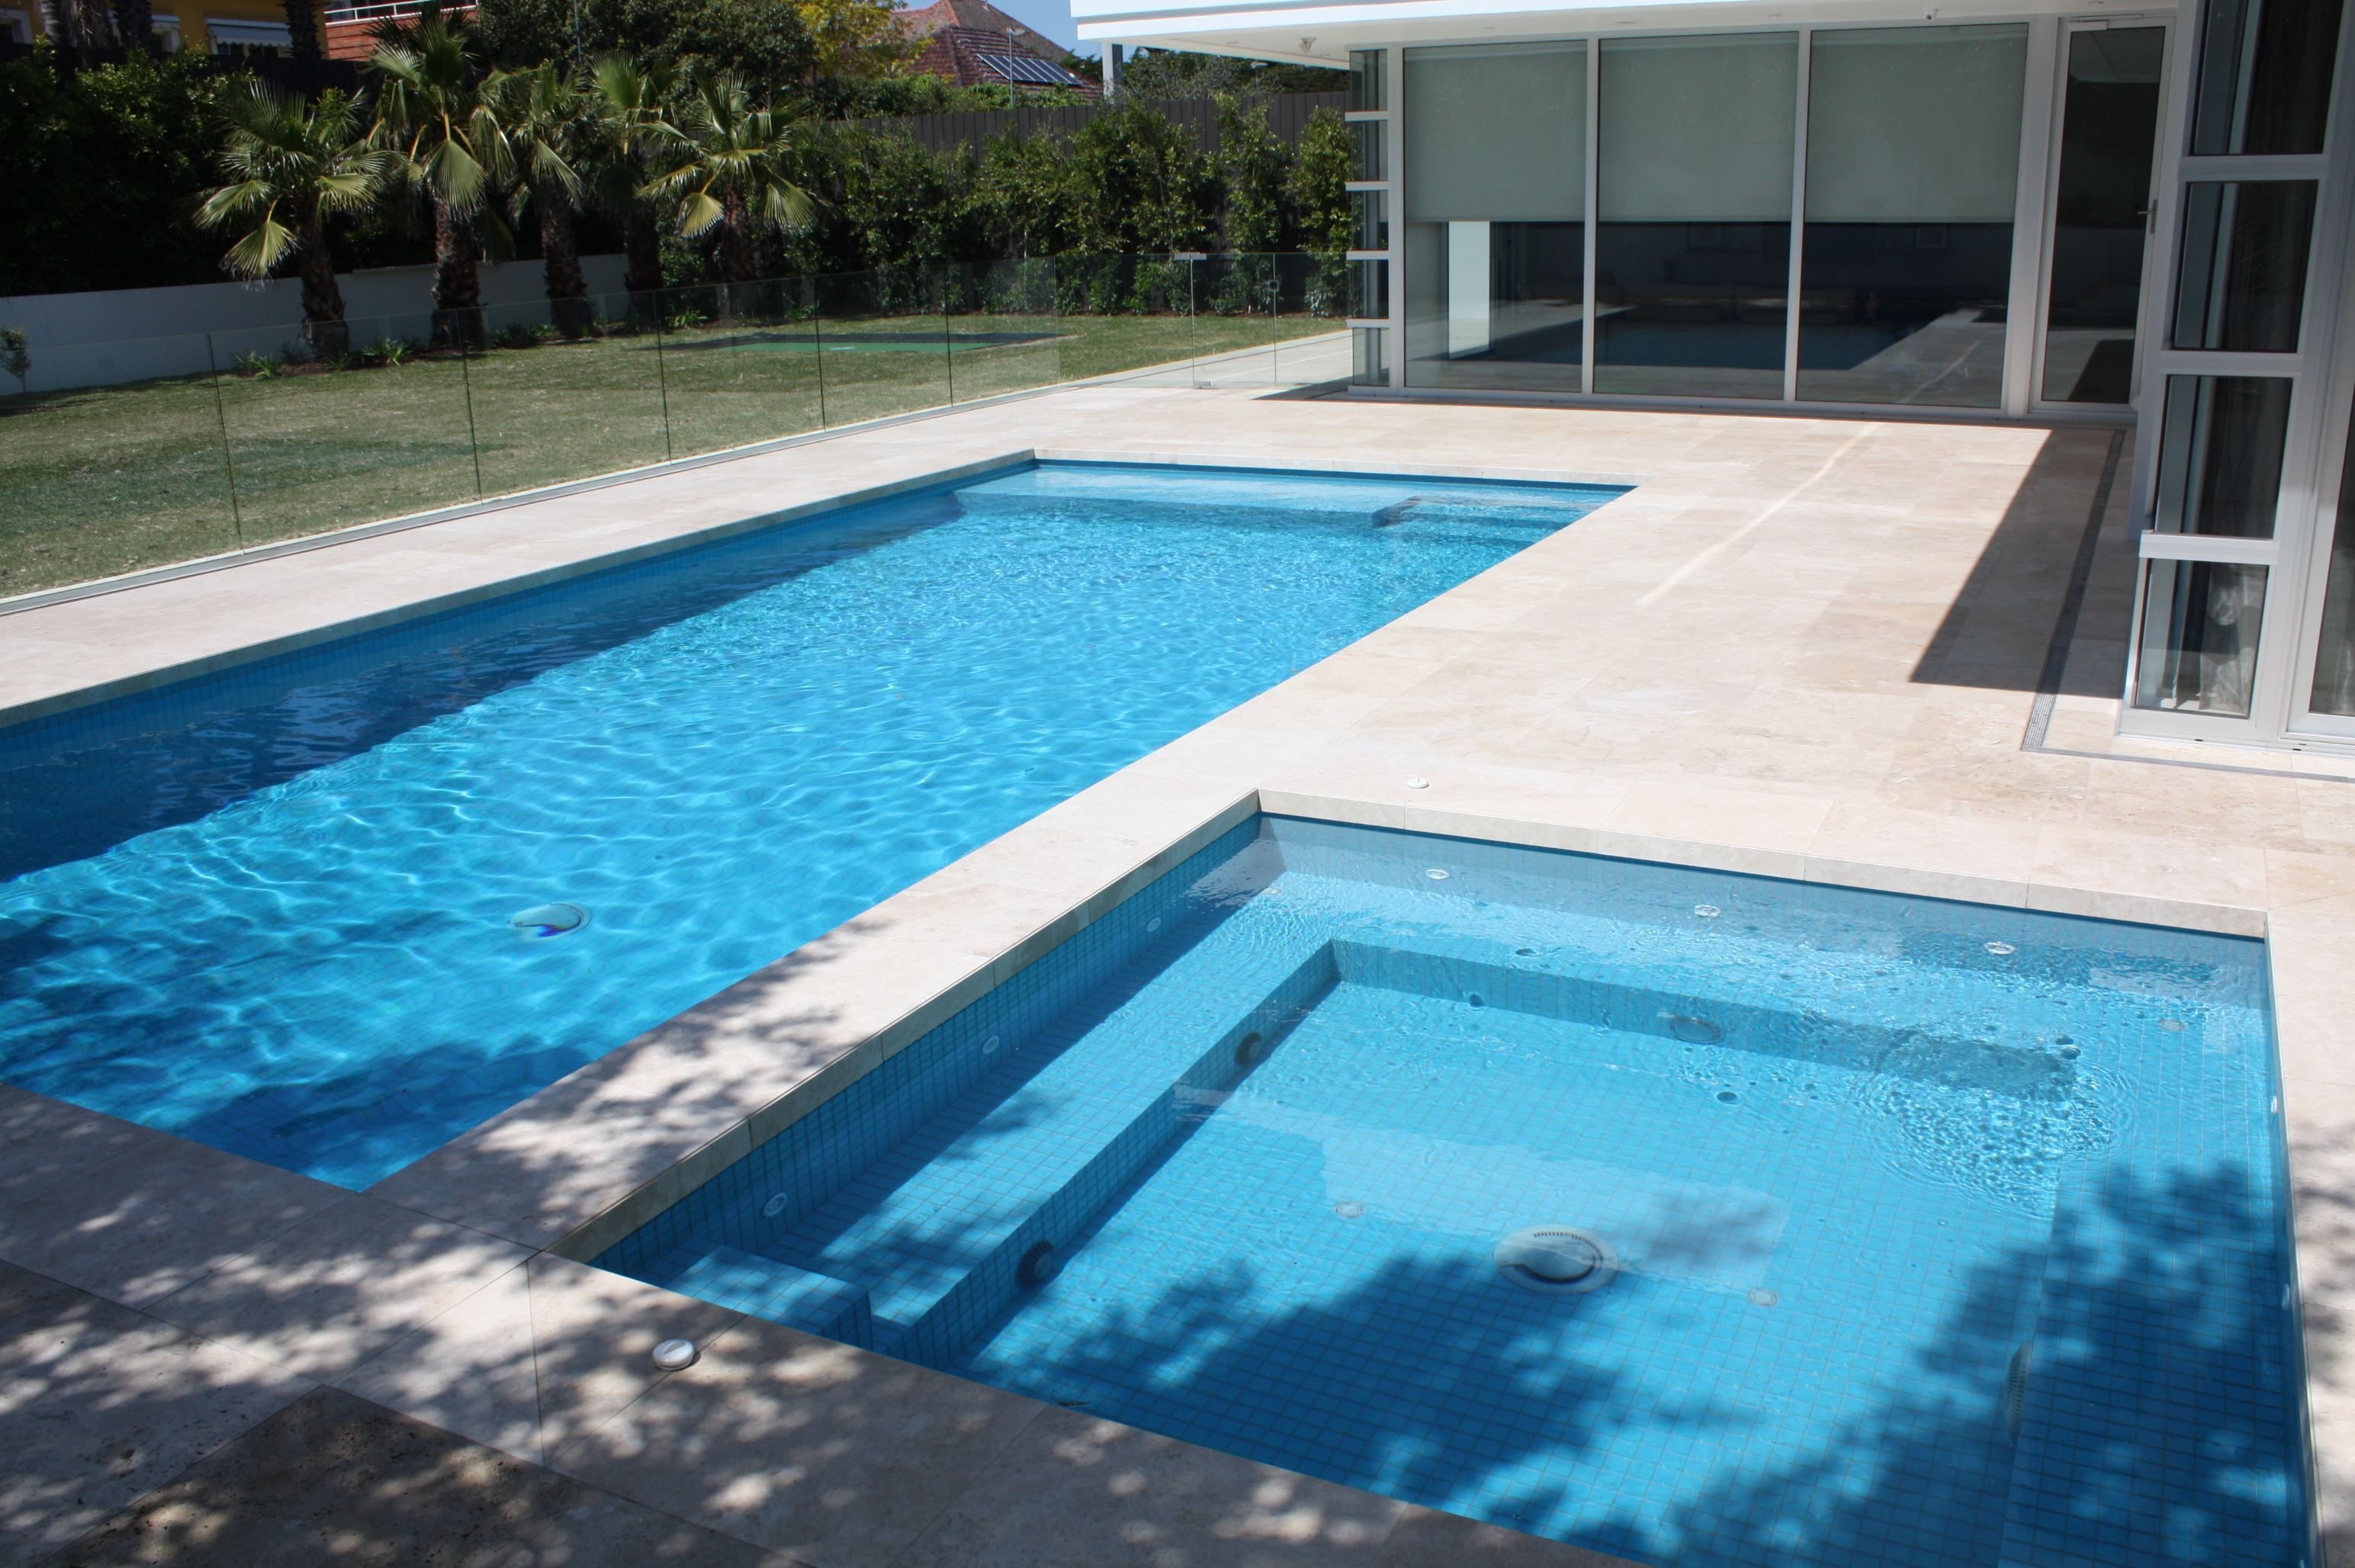 swimming pool leak -5.JPG 640×480 pixels | Home Ideas and Projects ...